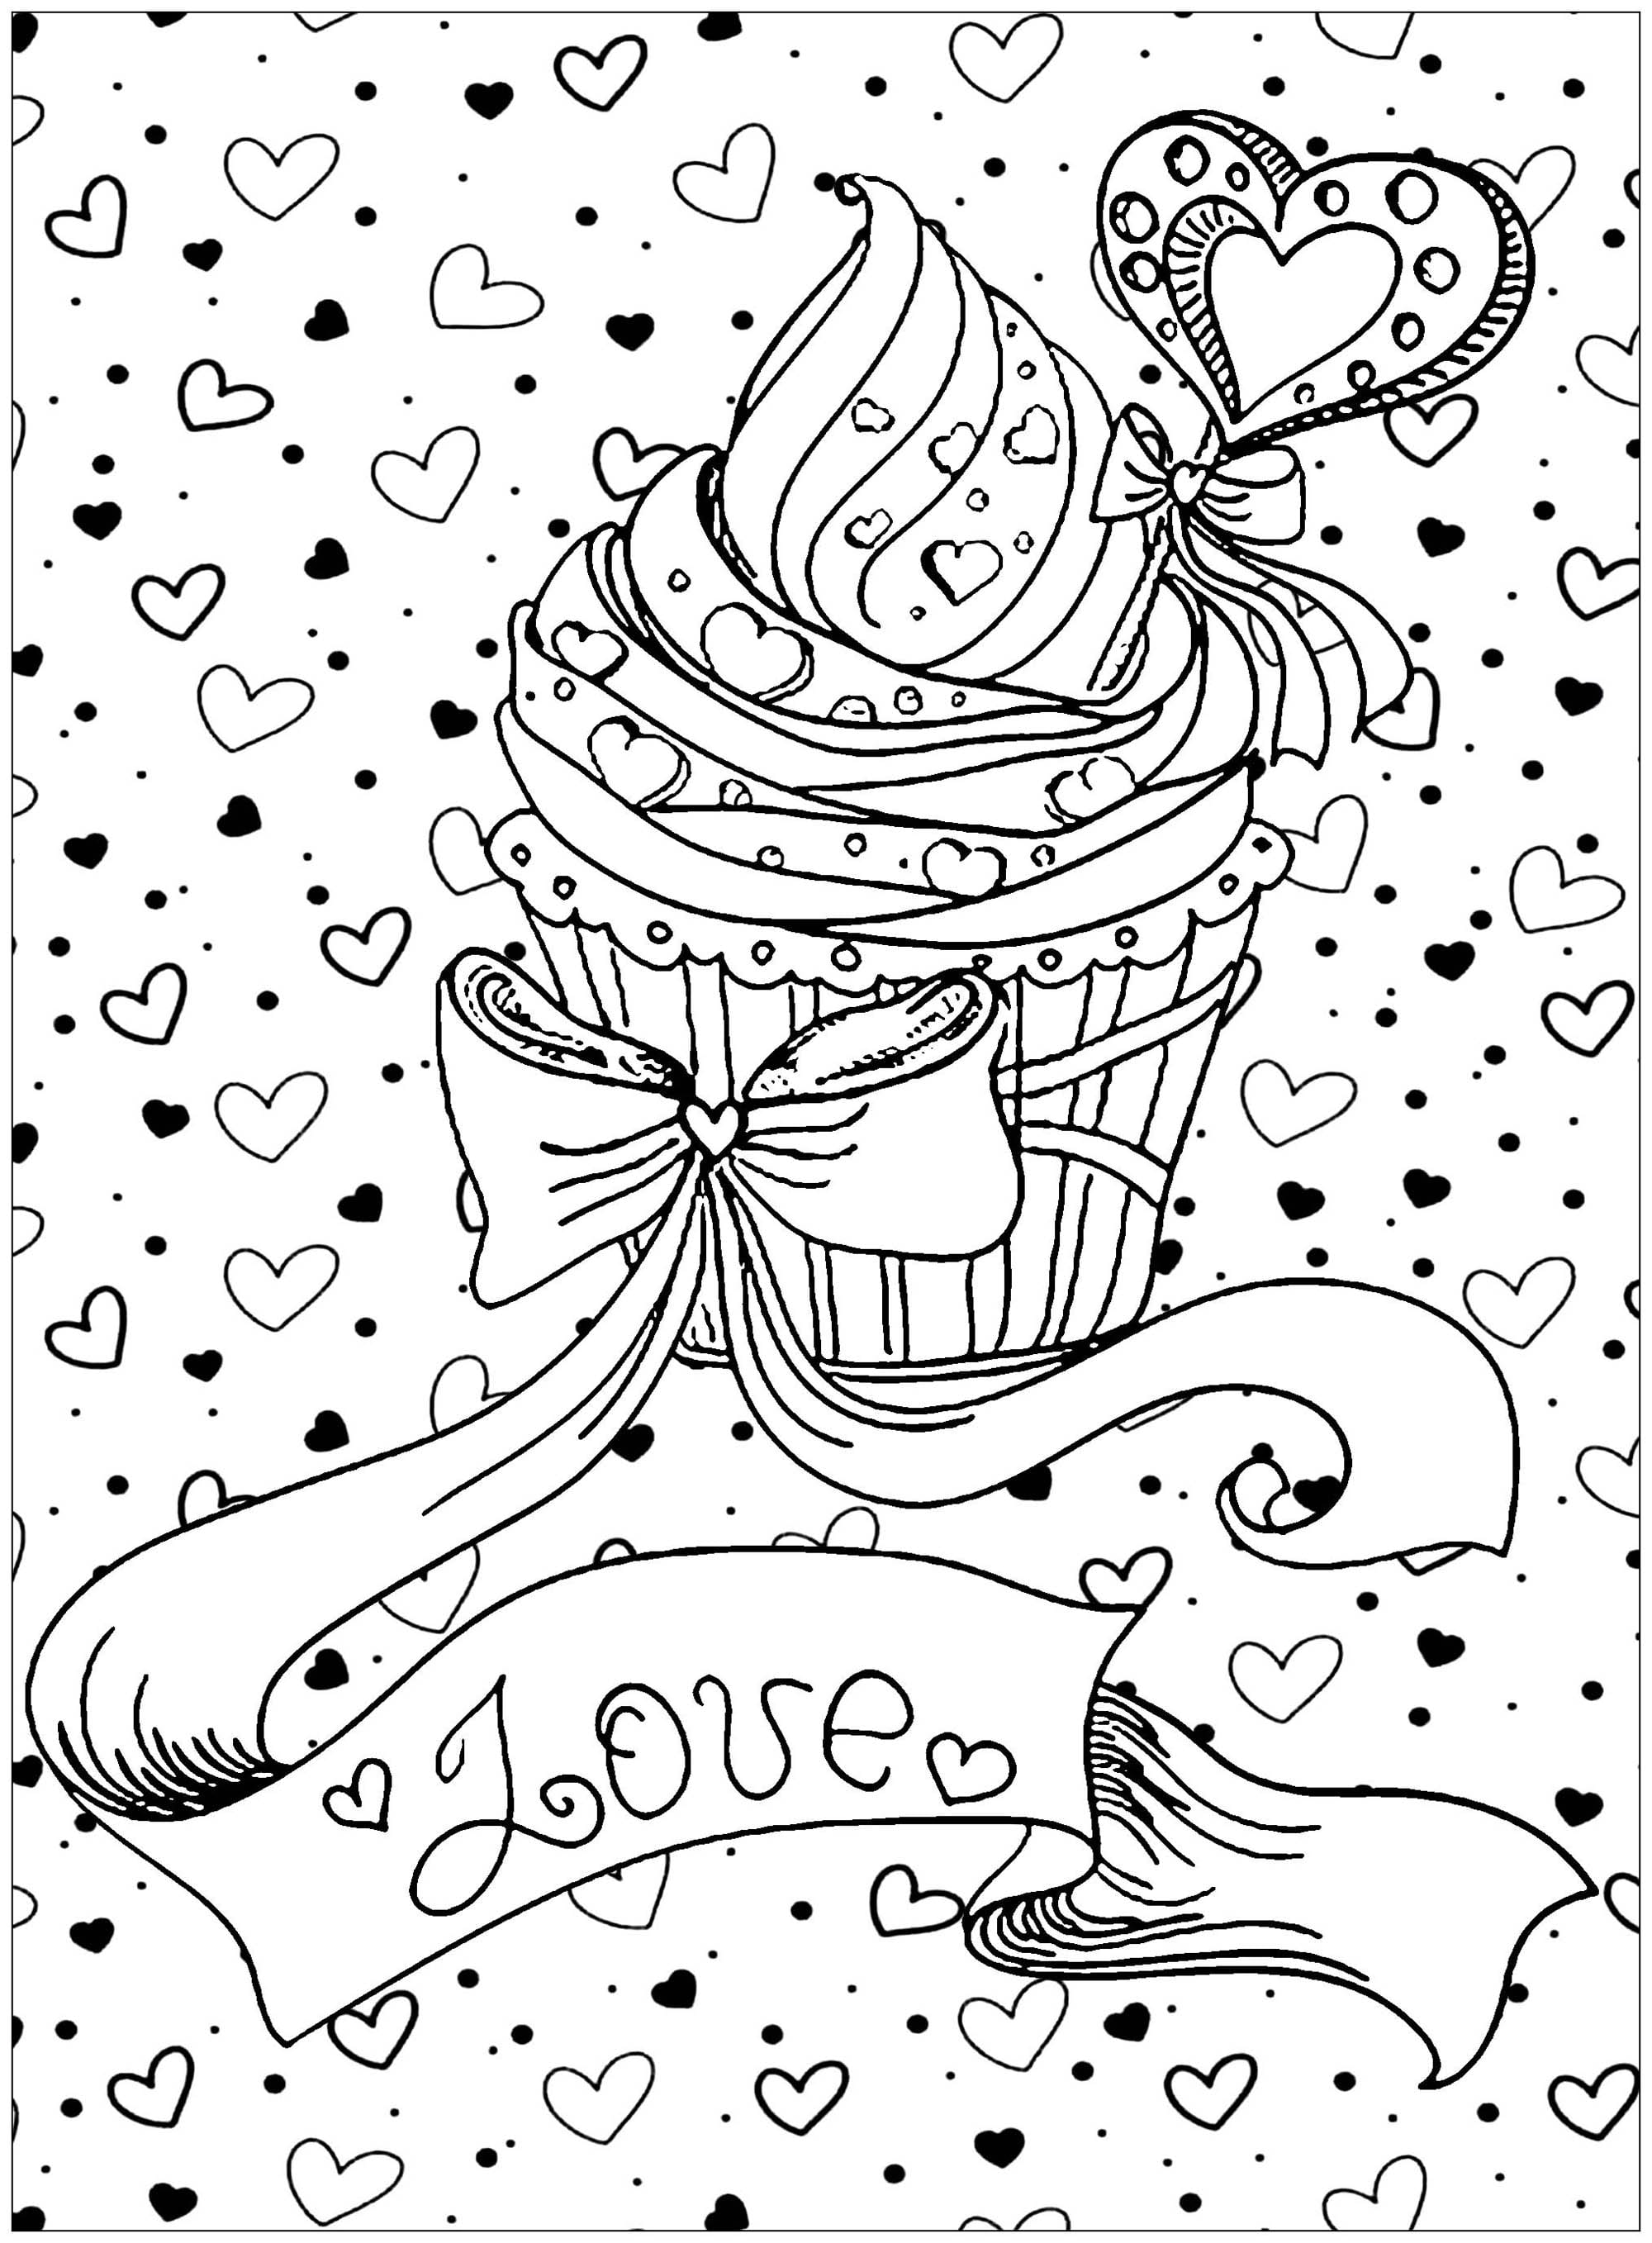 Unsurpassed Pastry Coloring Pages Cupcake Free Cup Cake Neo Coloring